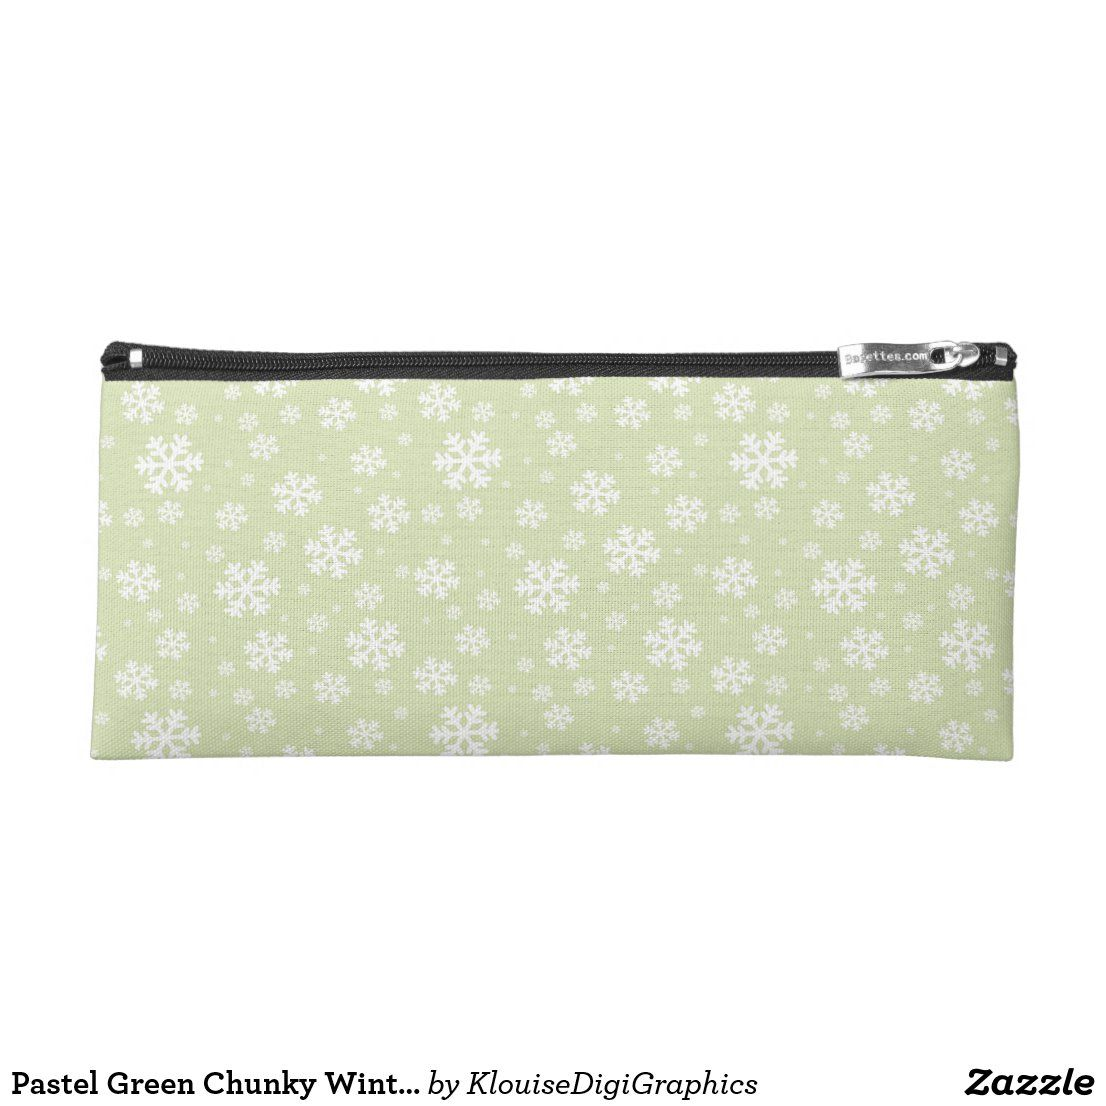 Photo of Estuche de lápices de color verde pastel pastel copos de nieve | Zazzle.com